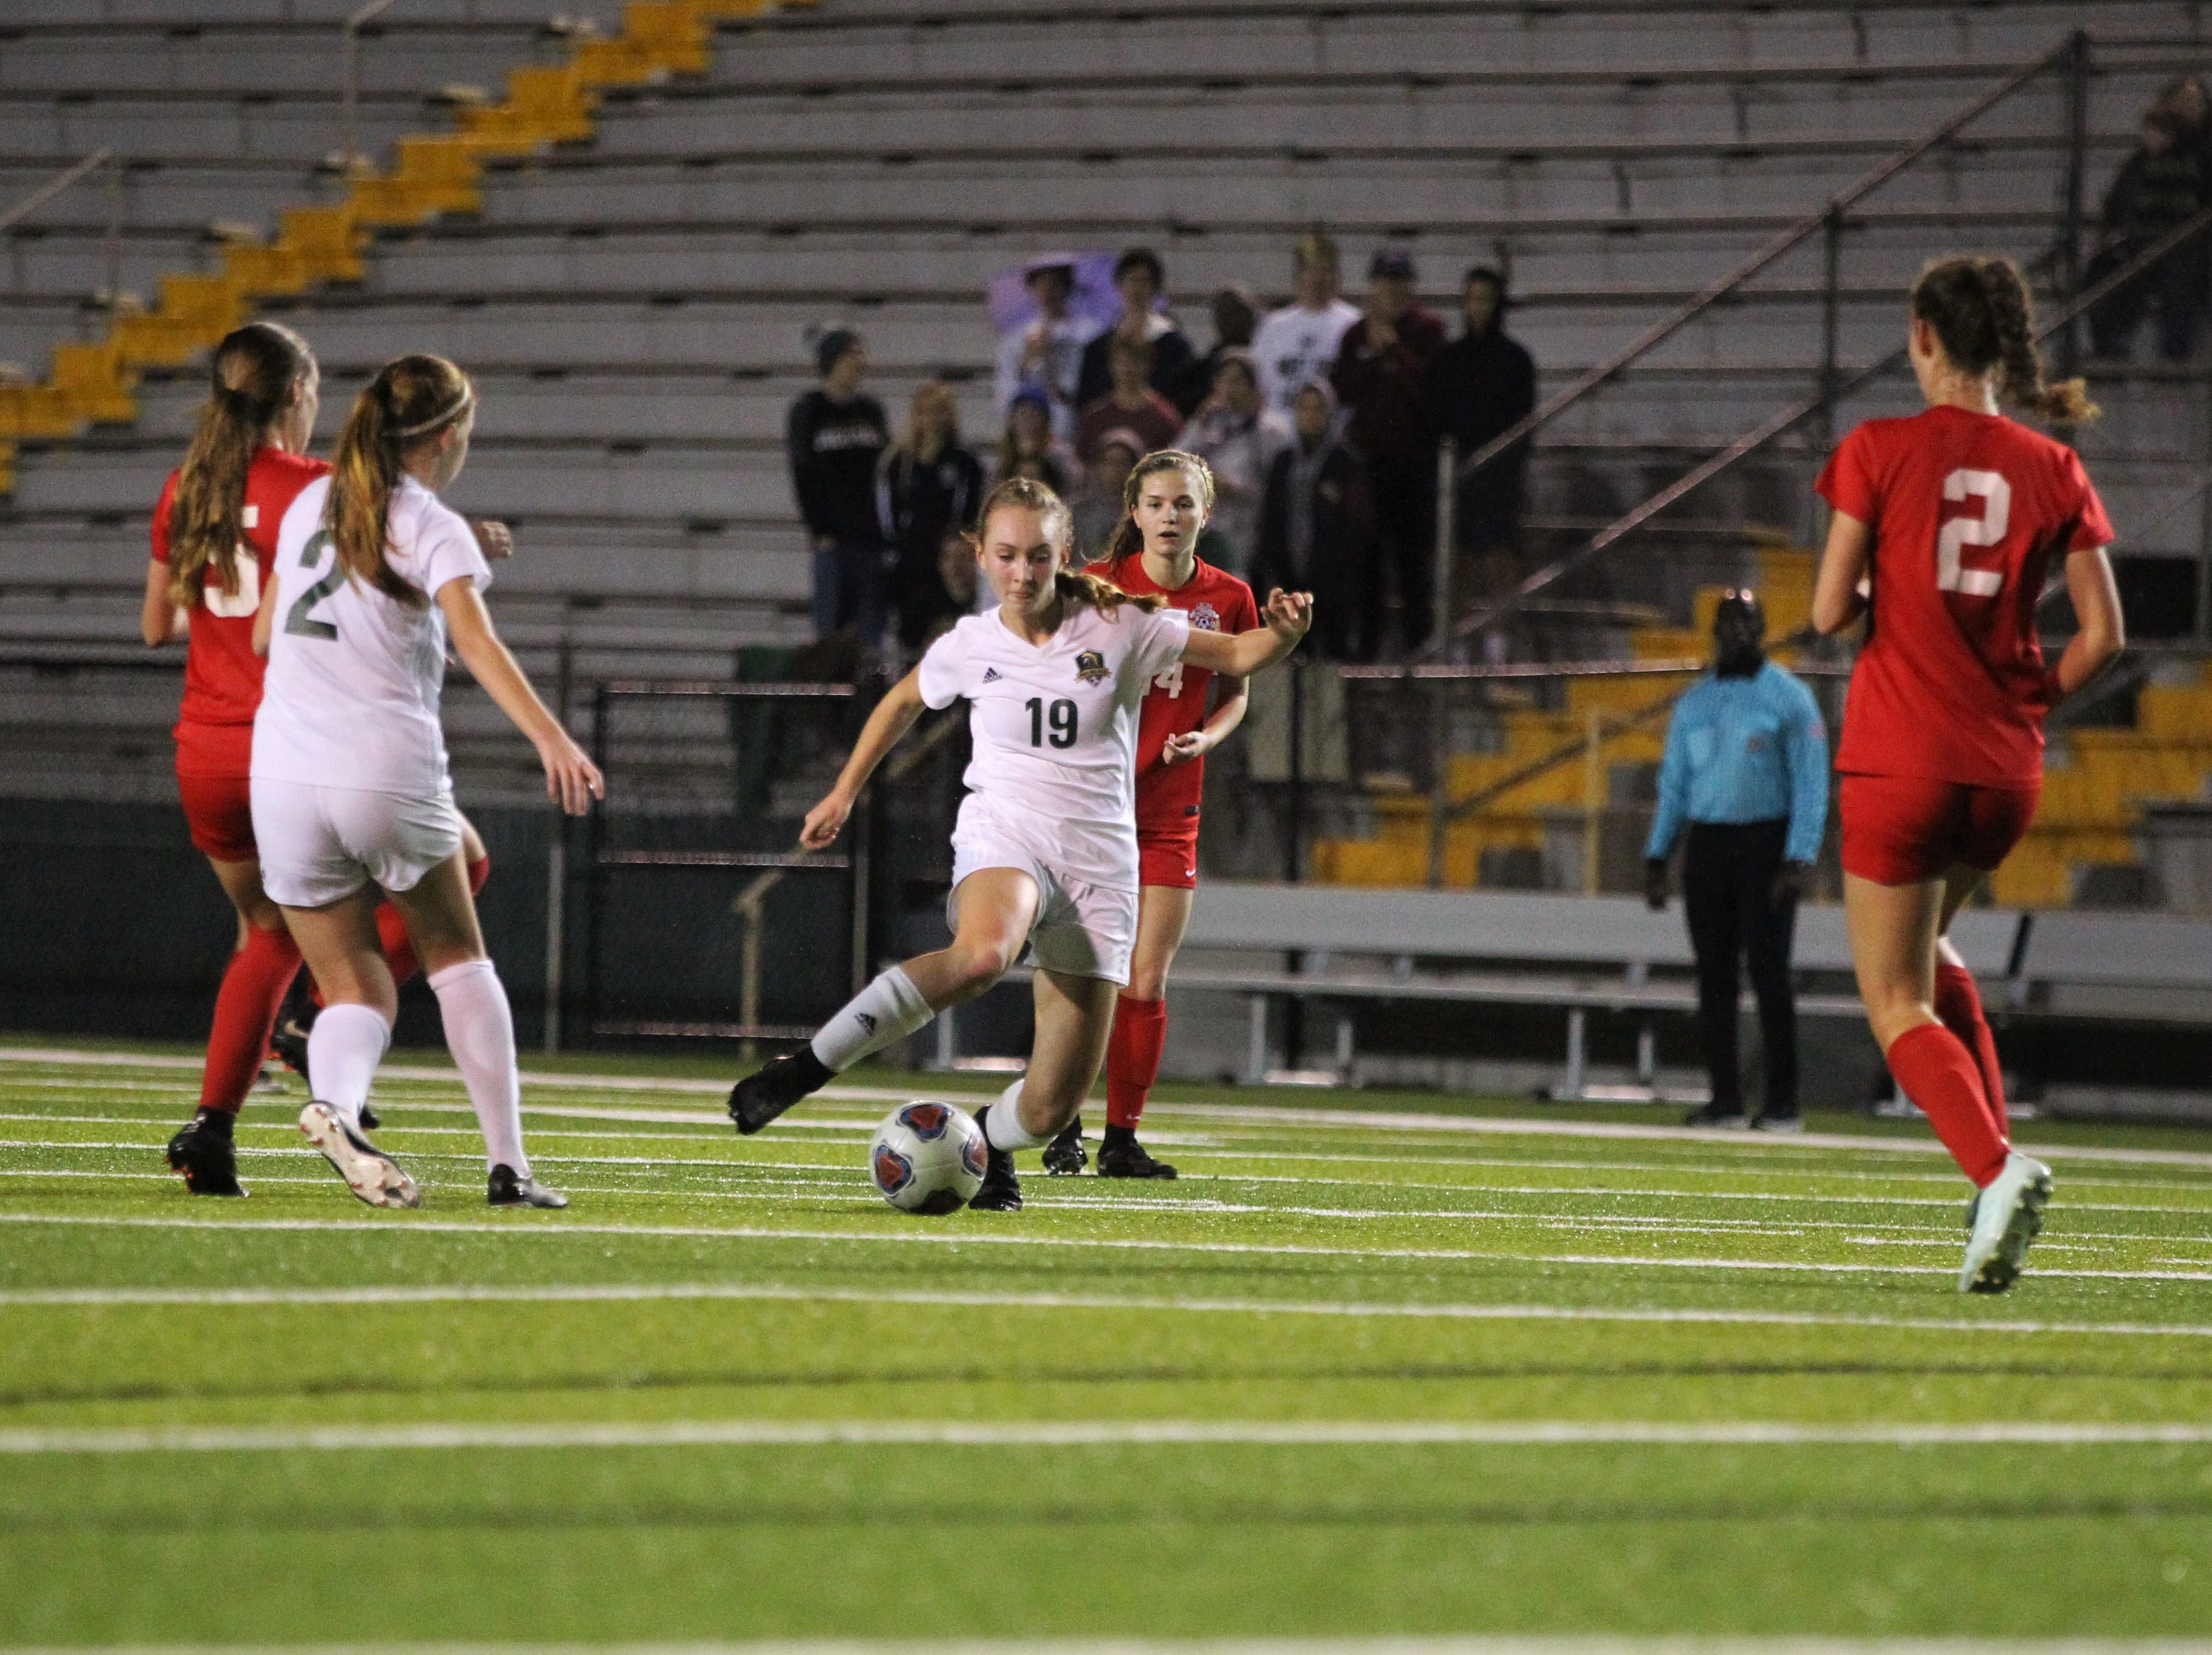 Lincoln's Lexi Gray dribbles in the midfield as Leon's girls soccer team beat Lincoln 2-1 in the District 2-4A championship at Gene Cox Stadium on Feb. 1, 2019.